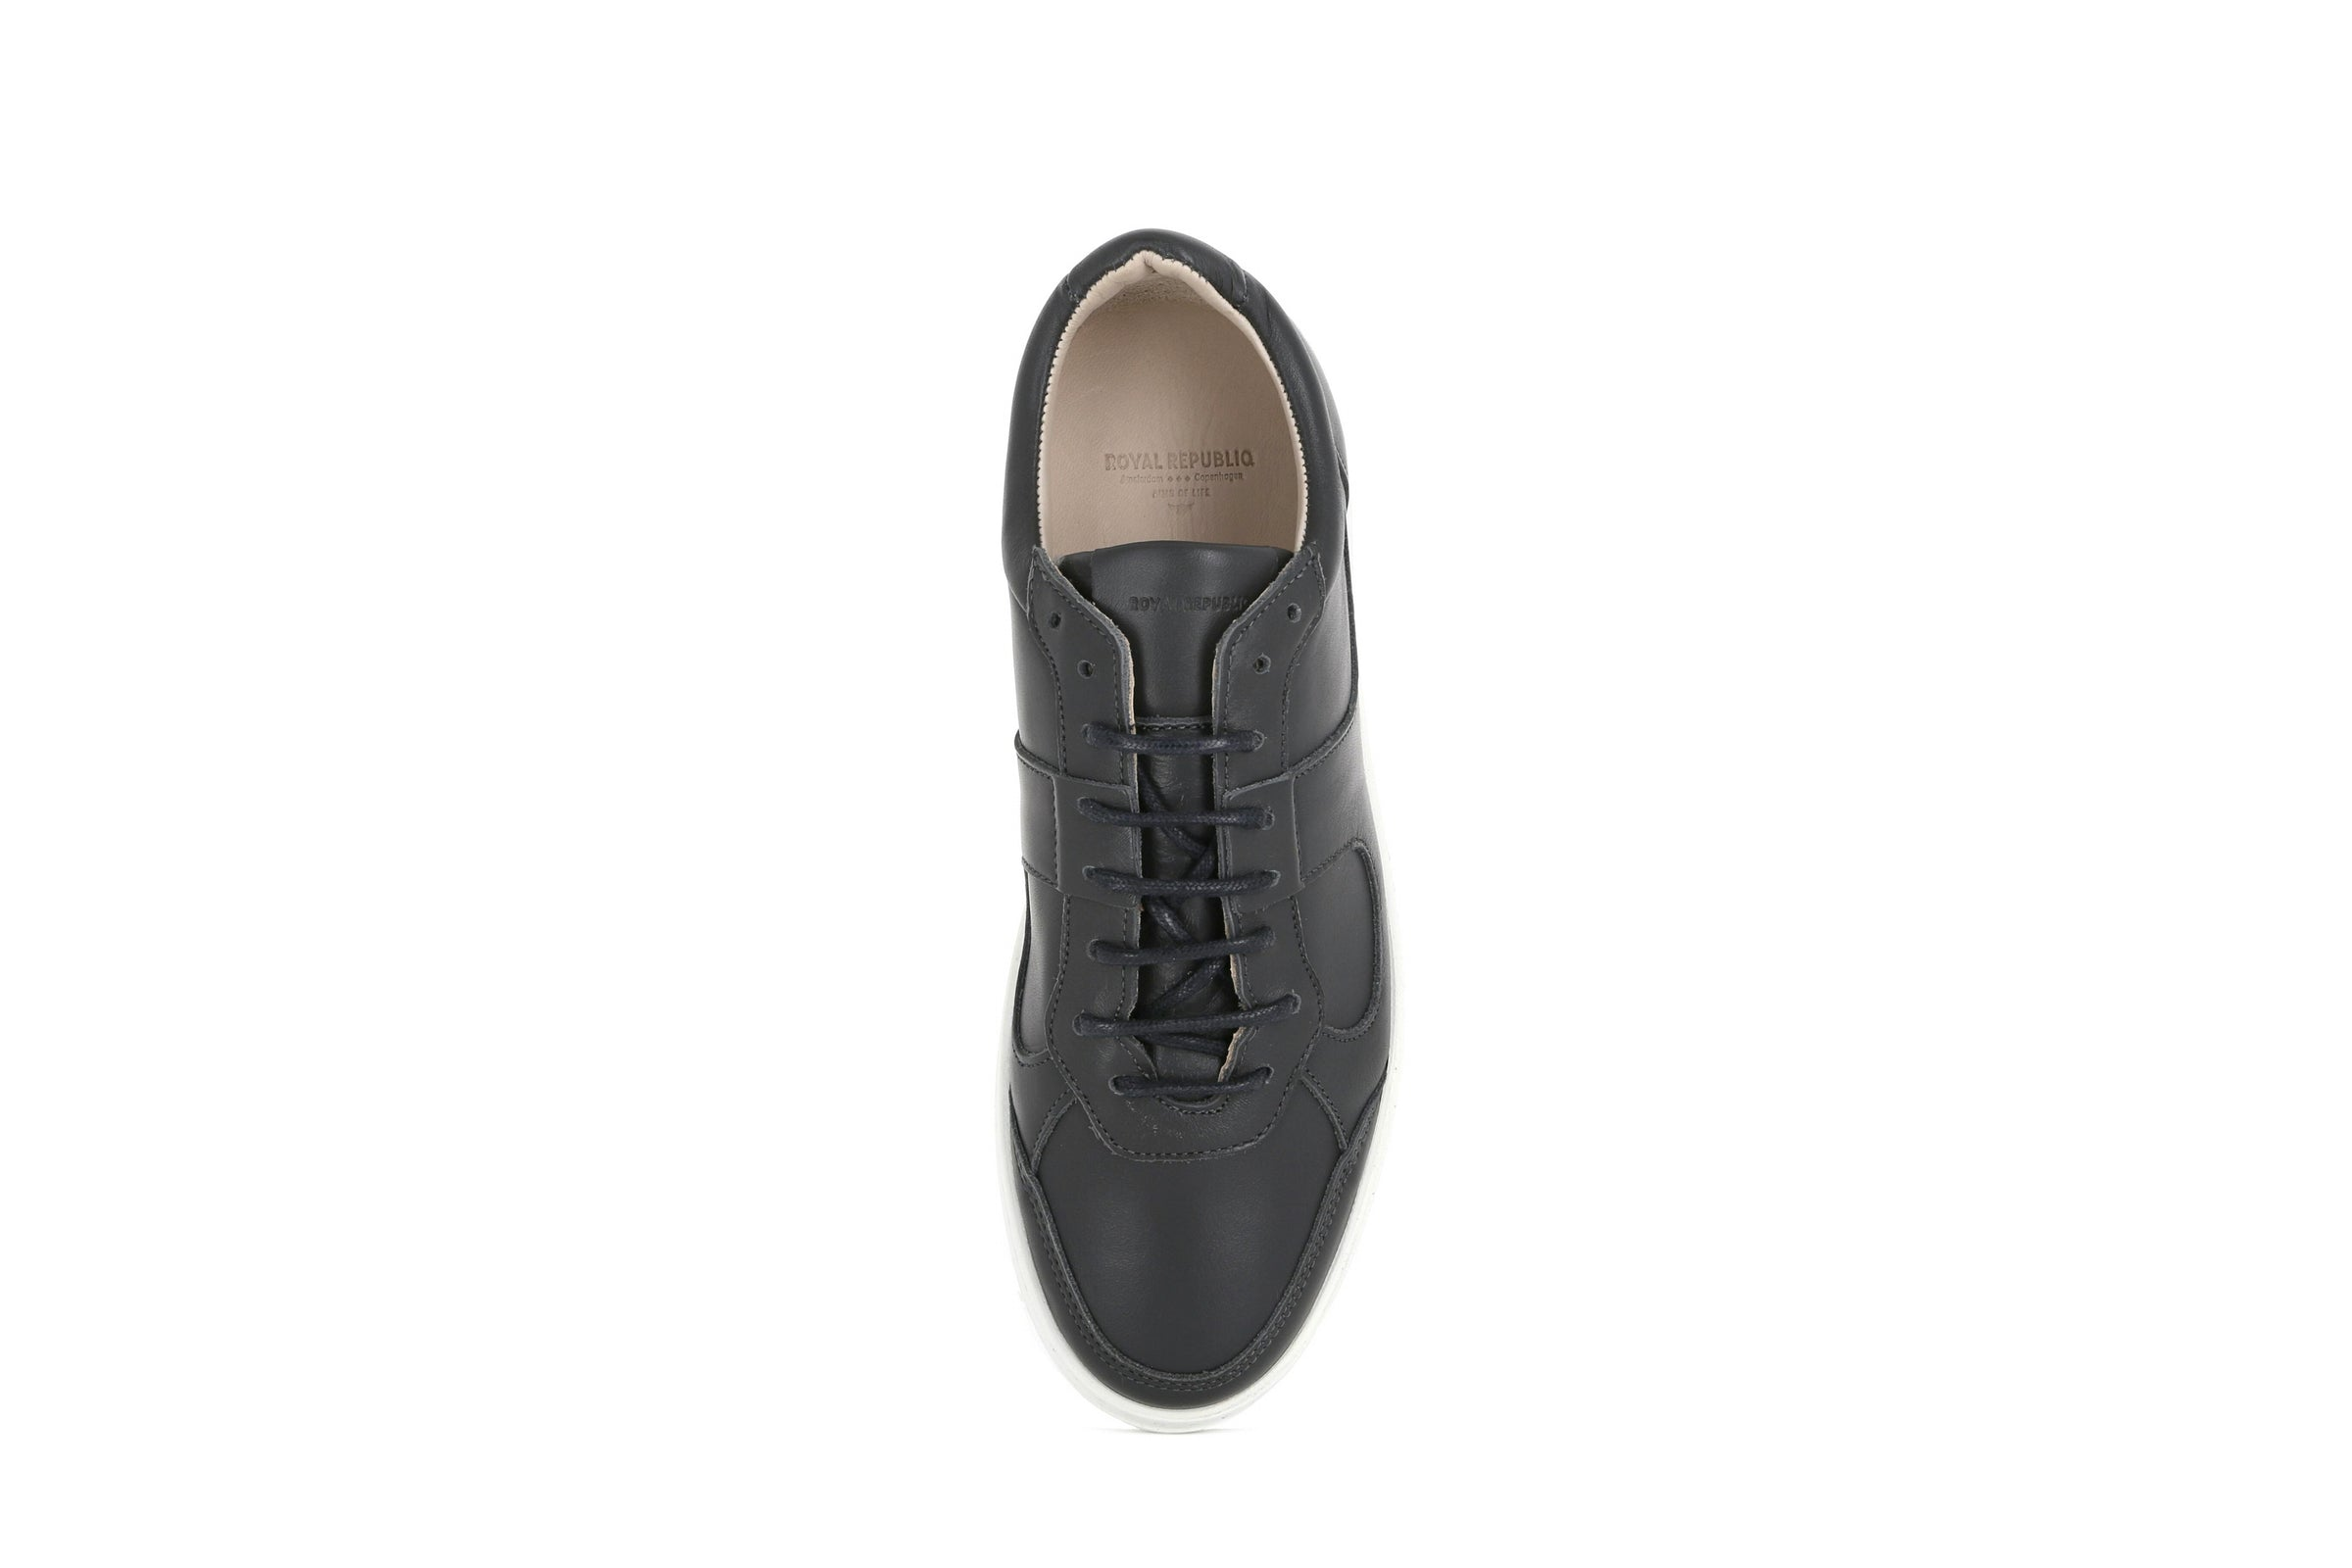 Bolt Oxford Shoe